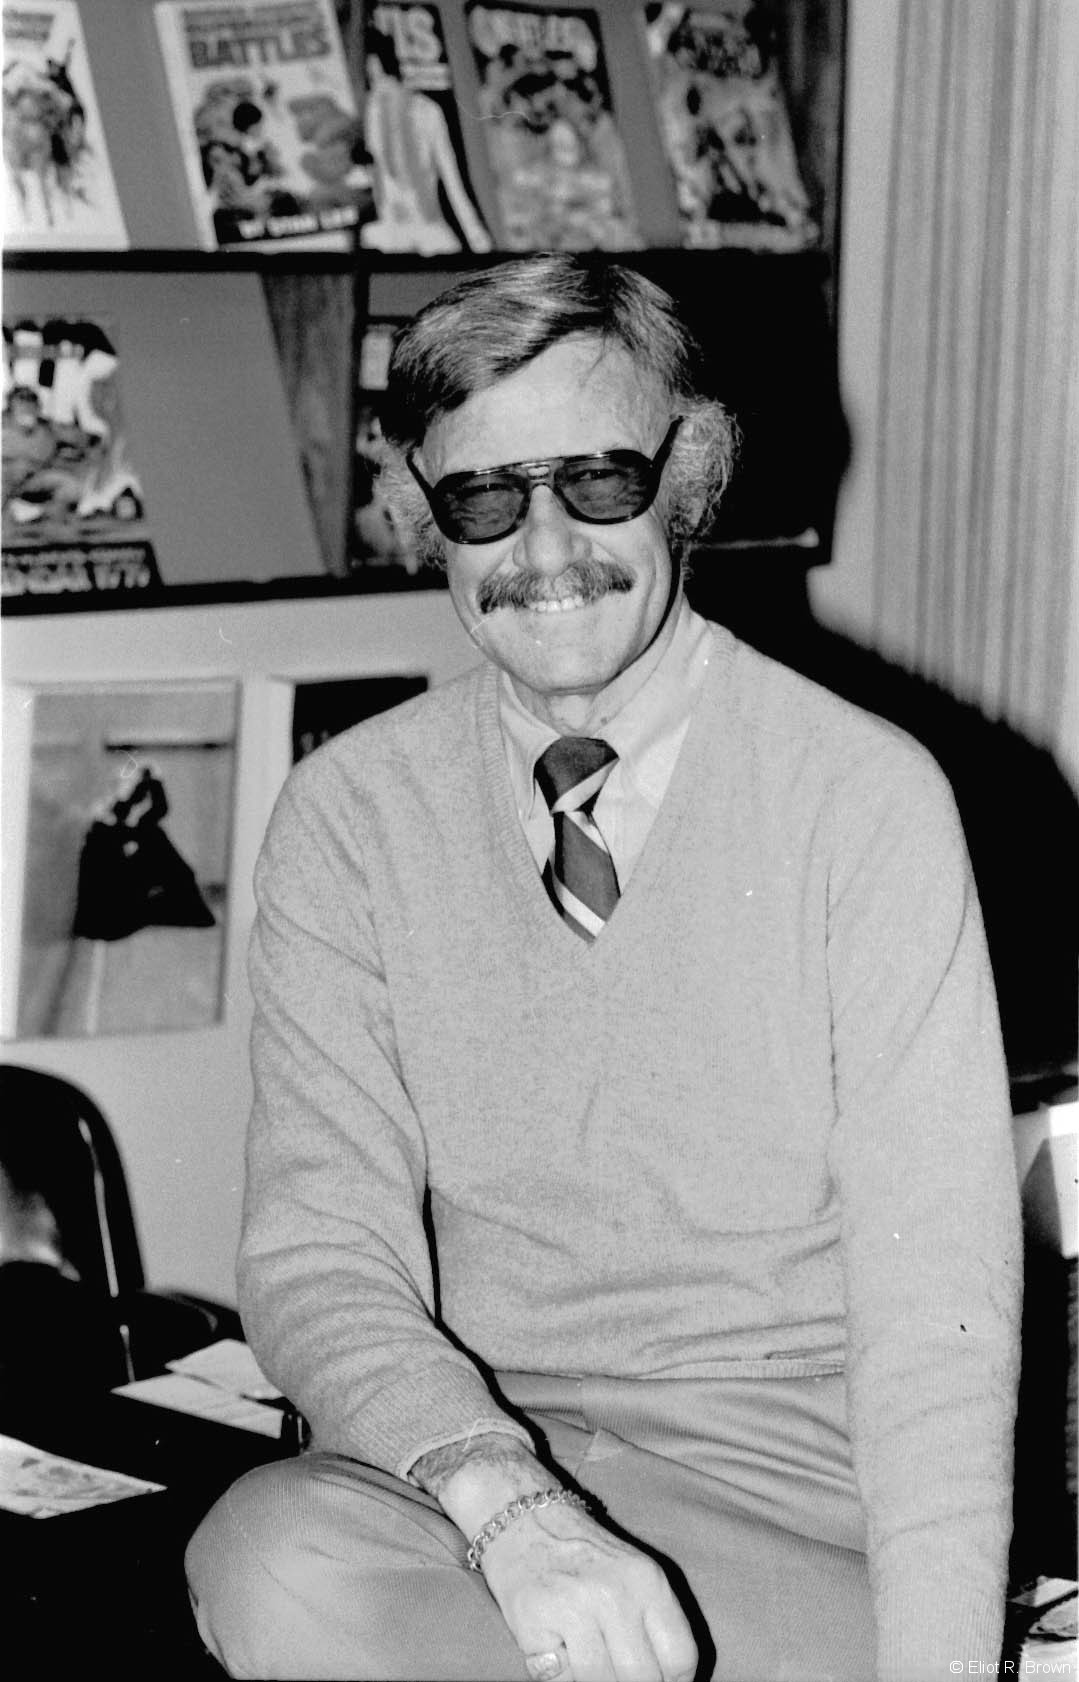 Stan Lee, idea man, college lecturer and spiffy moustach wearer. Some time in either late 1979 or 1980, Stan moved himself off to California. Stan was always interested in movies and movie-making. Marvel Productions did some big biz for a while in animation. Here he is with a trademark big smile!